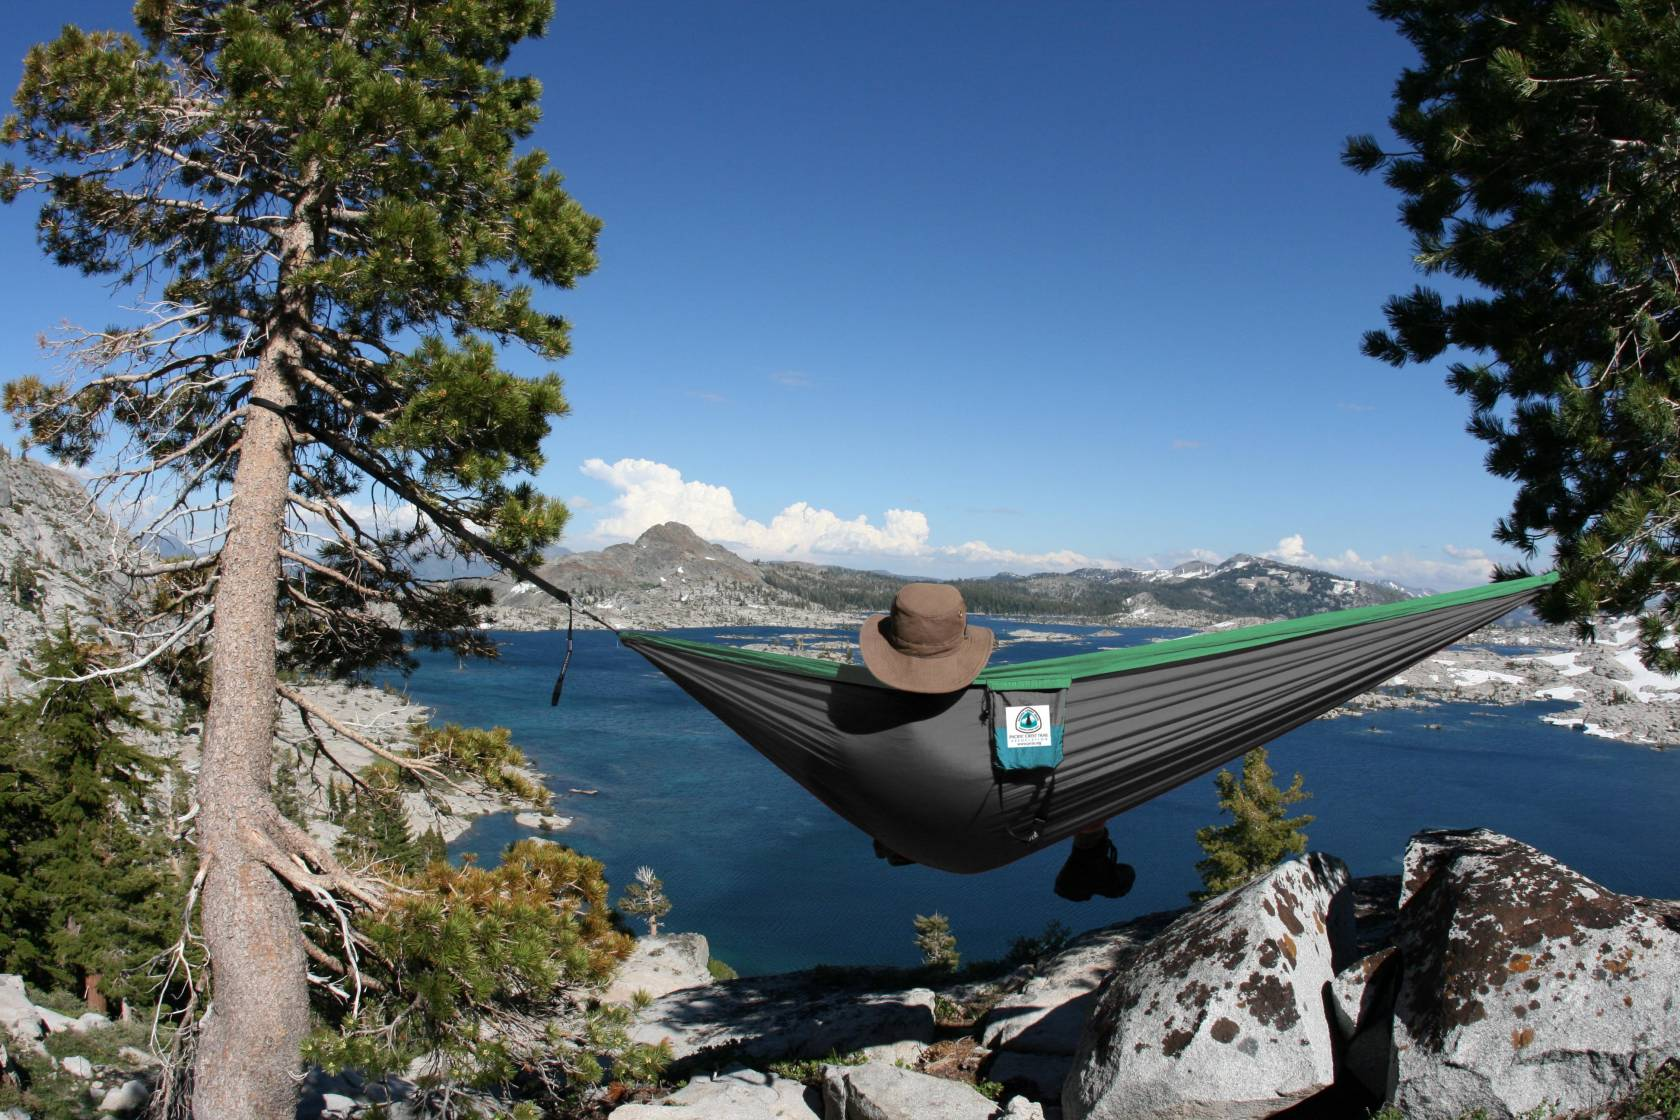 Relax on your next holiday while in this hammock.